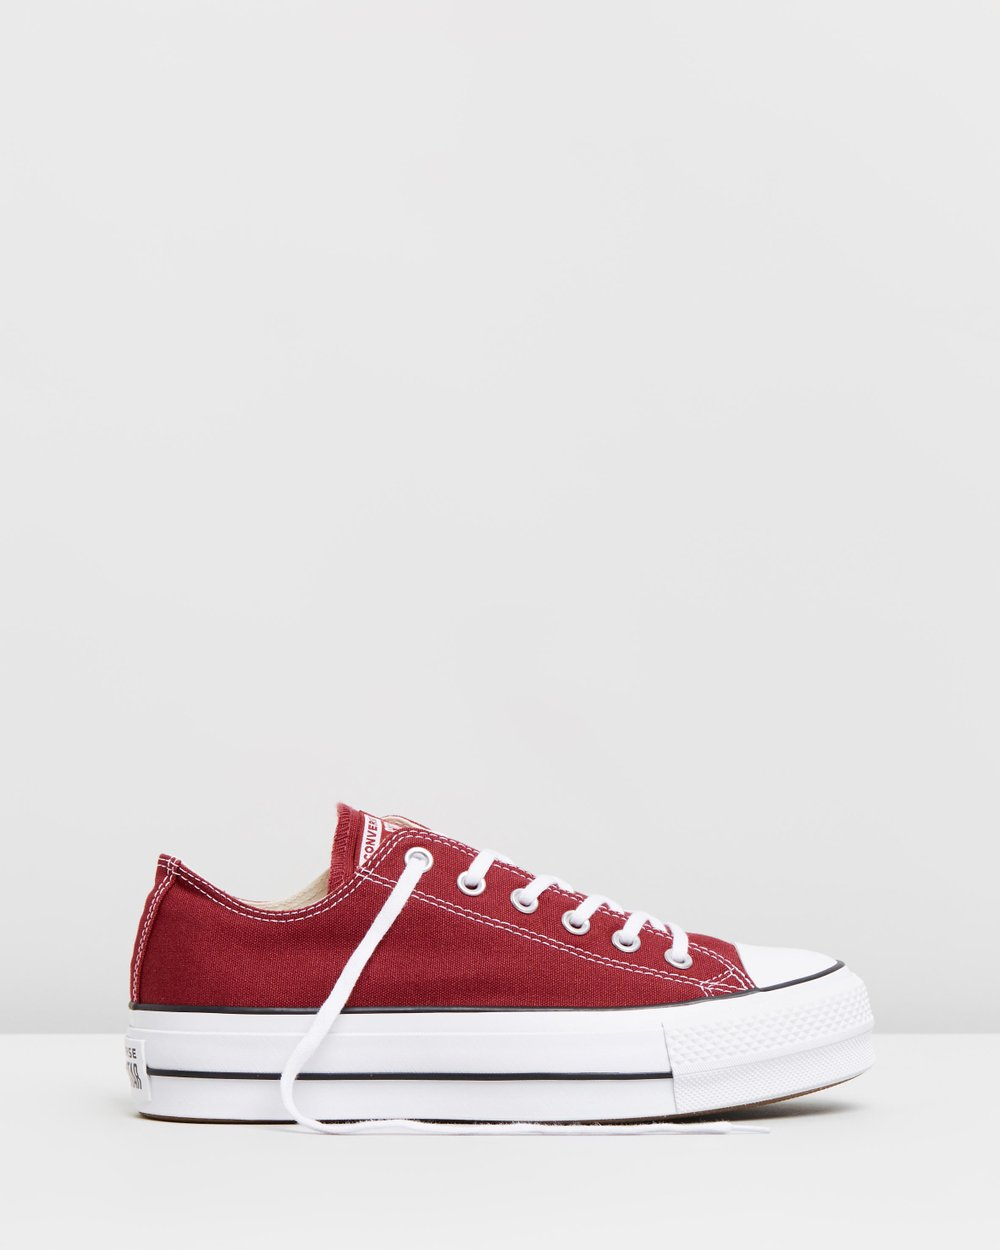 dbcbe842d0 Chuck Taylor All Star Lift - Women's by Converse Online | THE ICONIC |  Australia